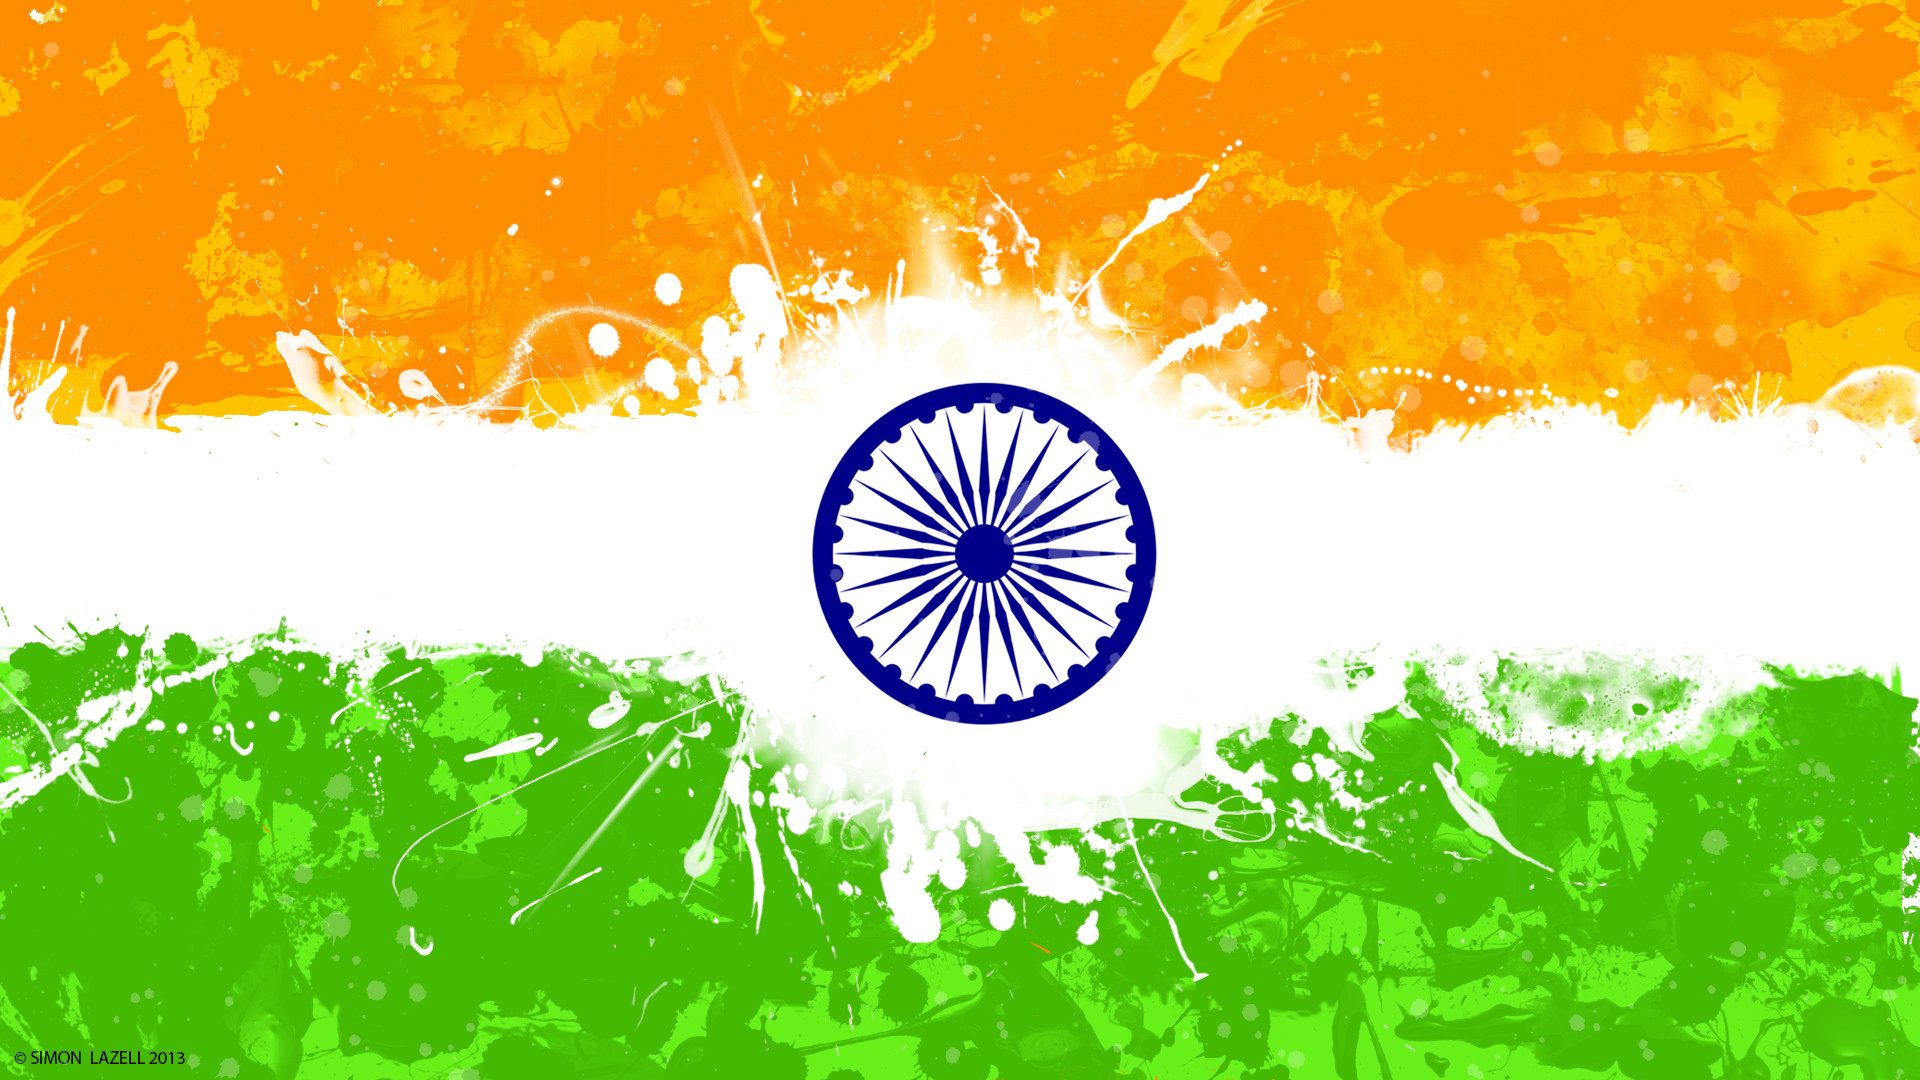 Wallpaper download india -  Hd Wallpapers Images Free Download Indian Flag Wallpapers Hd Images